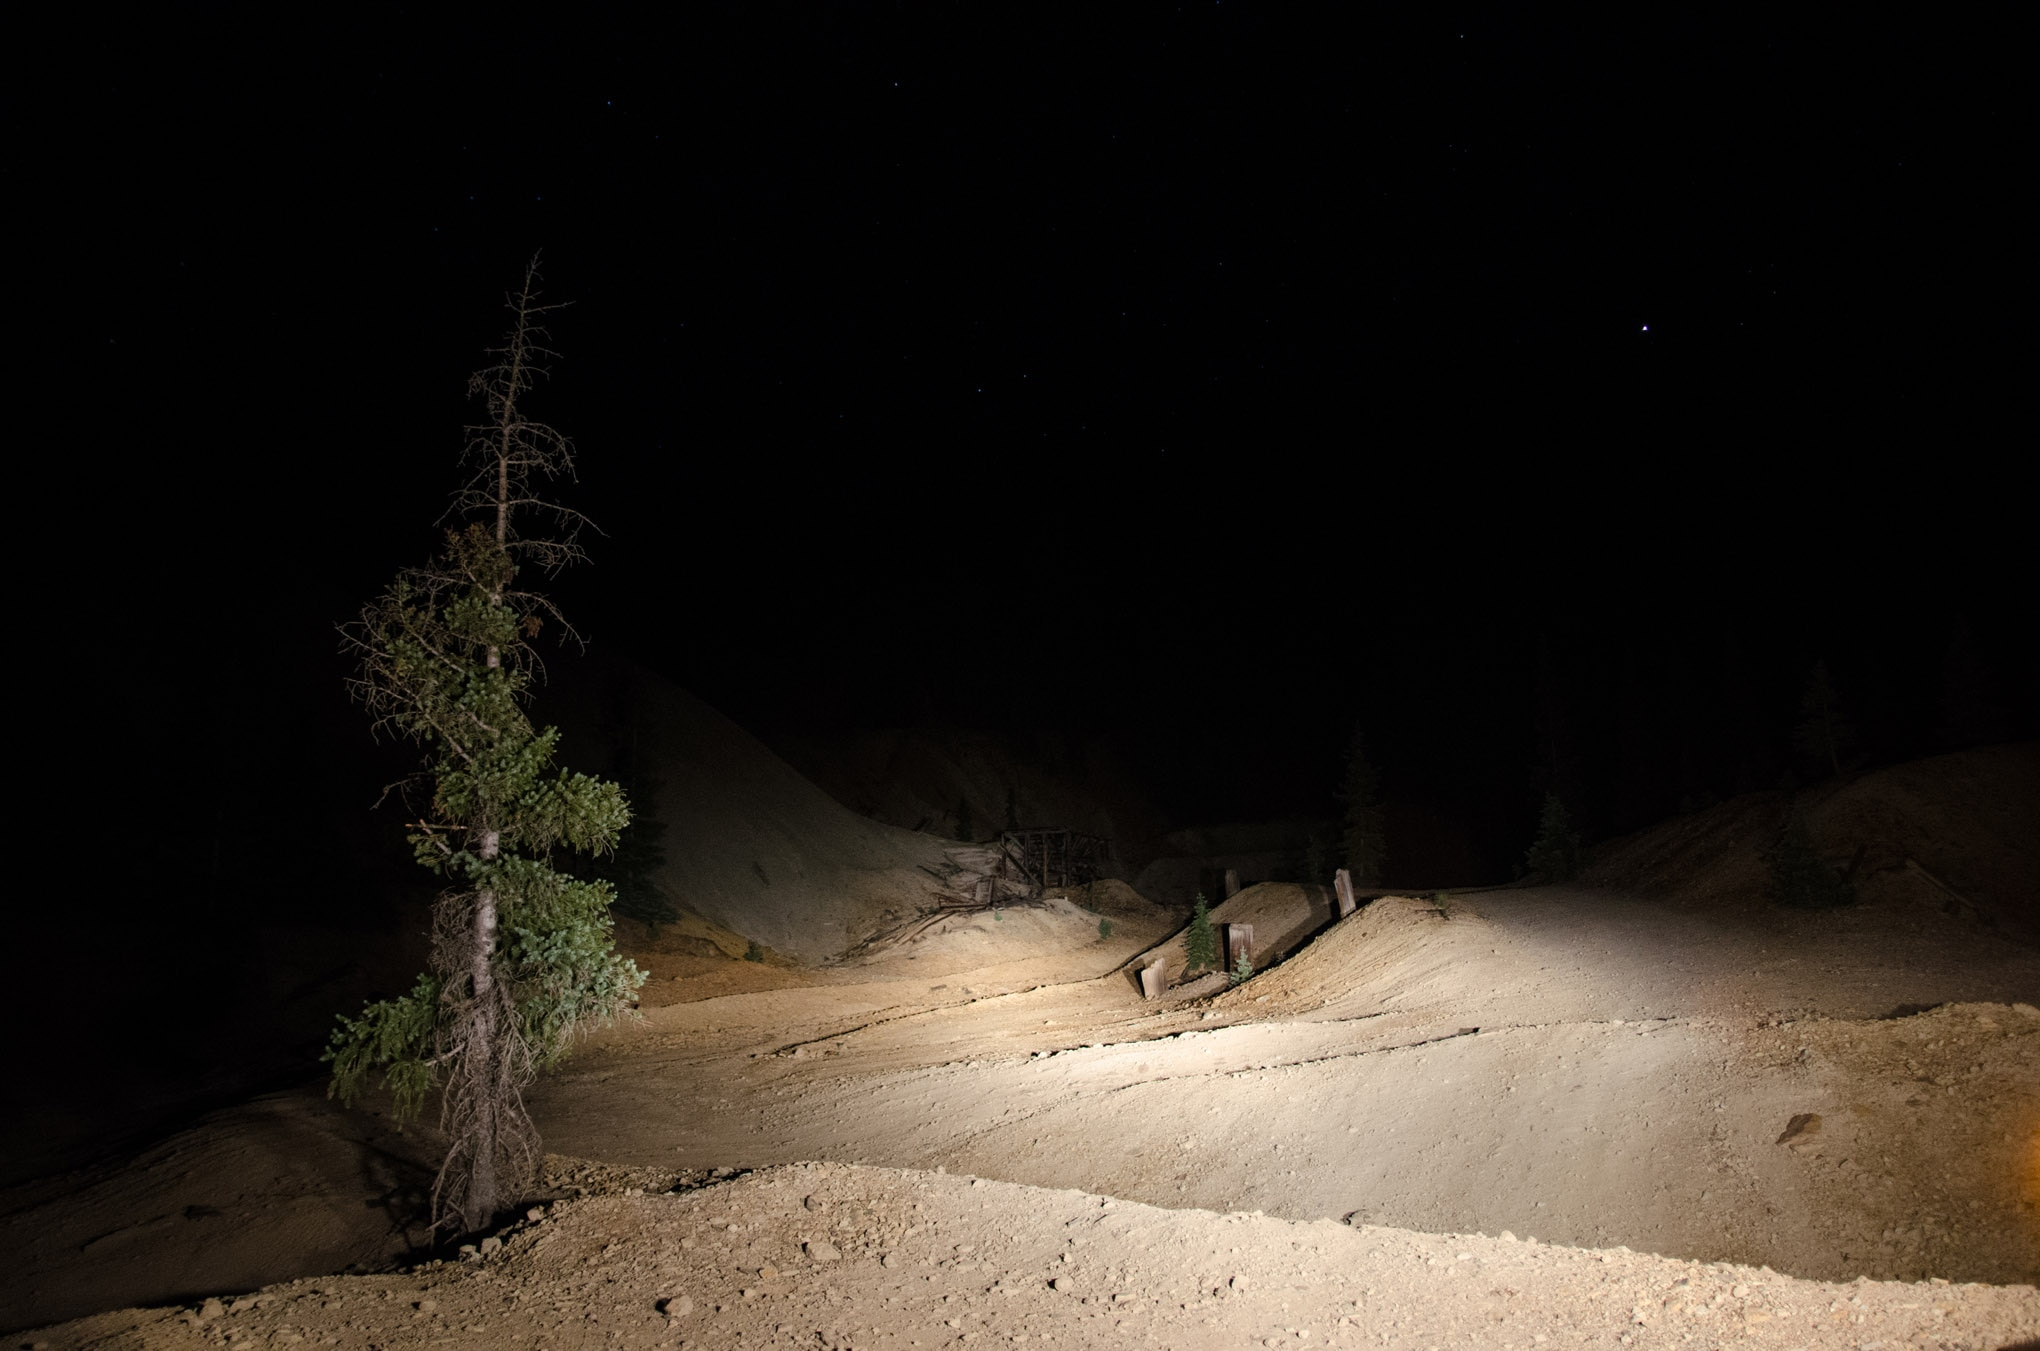 These two photos show the difference in visibility between using just the high-beam headlights and the ADV Light Cannons. A tripod was used in the same position along with the same camera settings for both images. The ADV lights clearly highlighted the collapsed mine ore hopper that was barely visible with our headlights as well as illuminating the hillsides and more of the trail ahead.